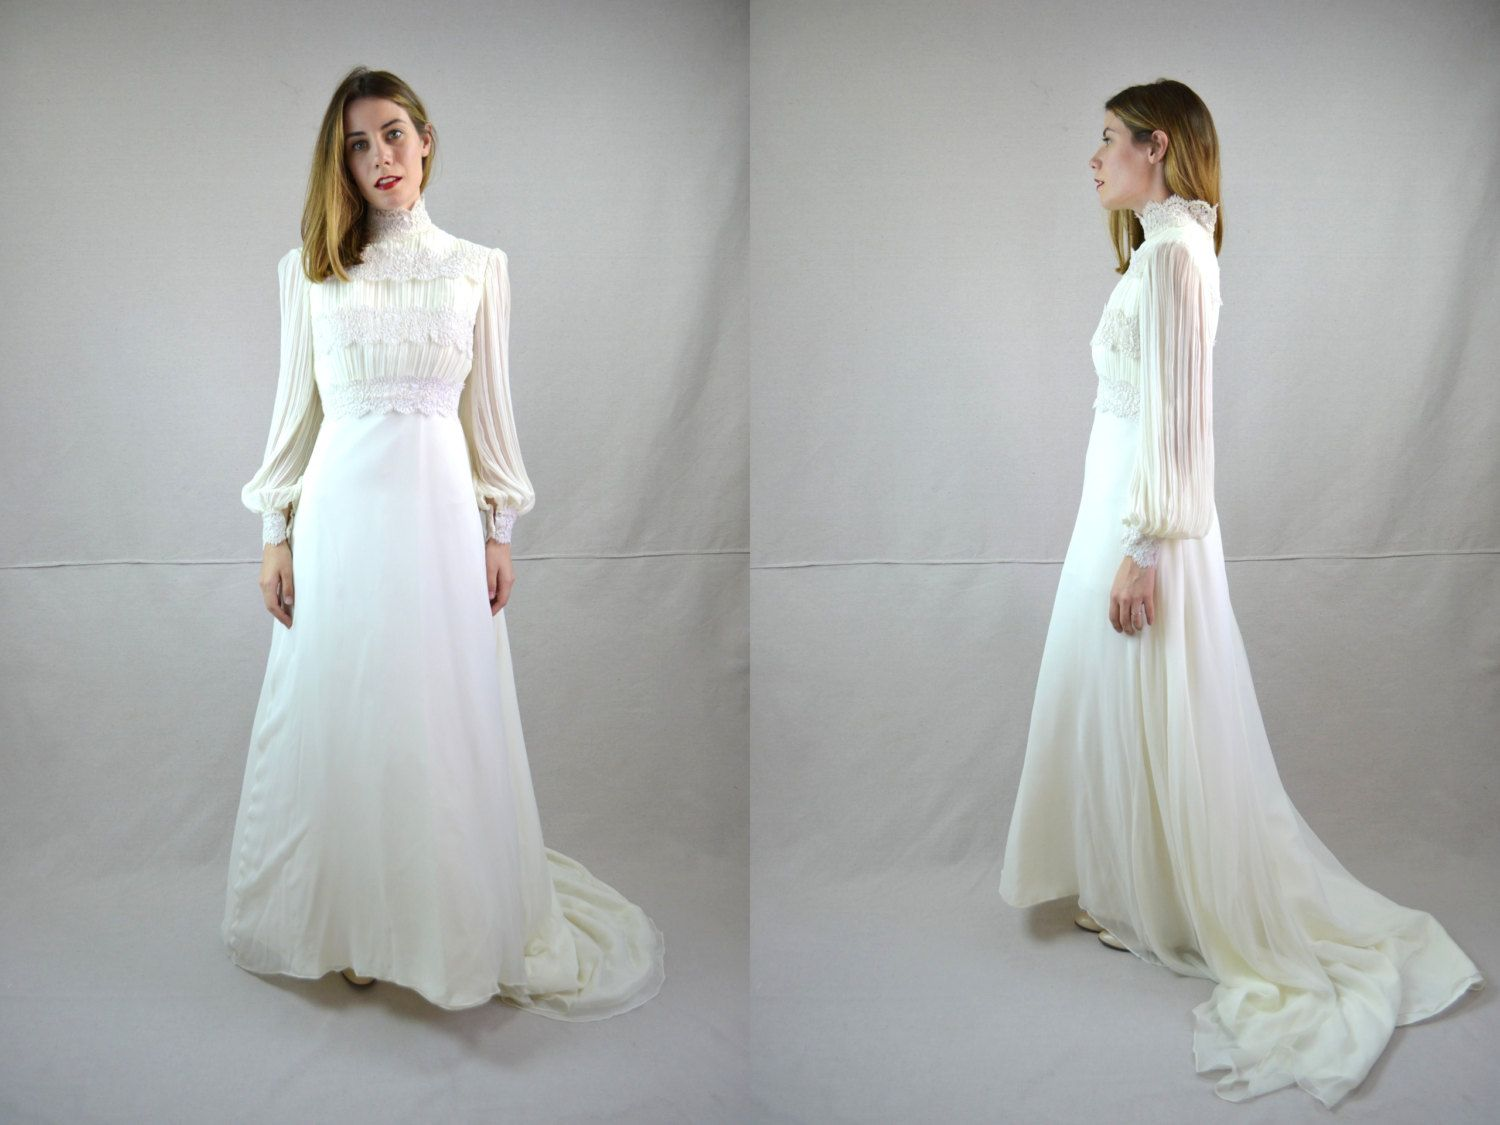 Vintage 1970's wedding dress for when Helena marries